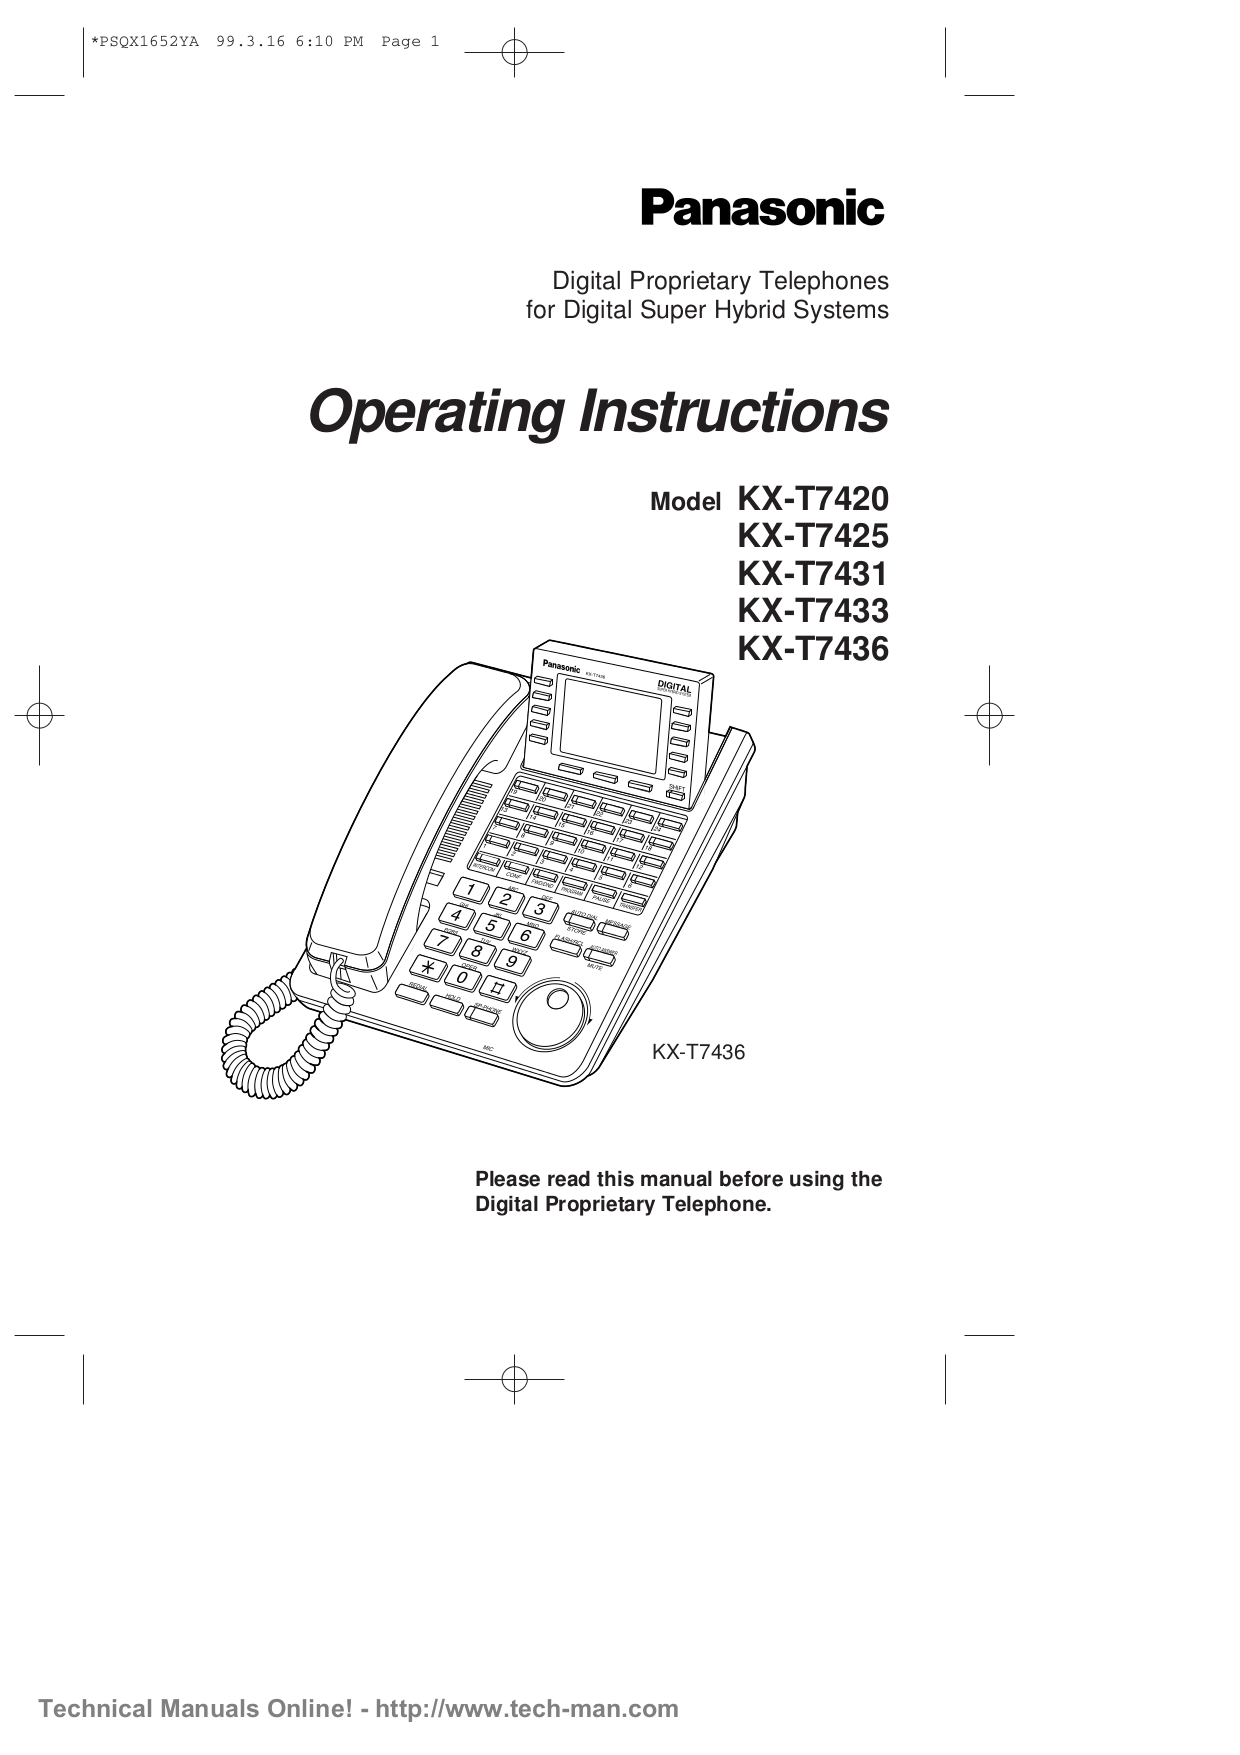 Download free pdf for Panasonic KX-T7431 Telephone manual